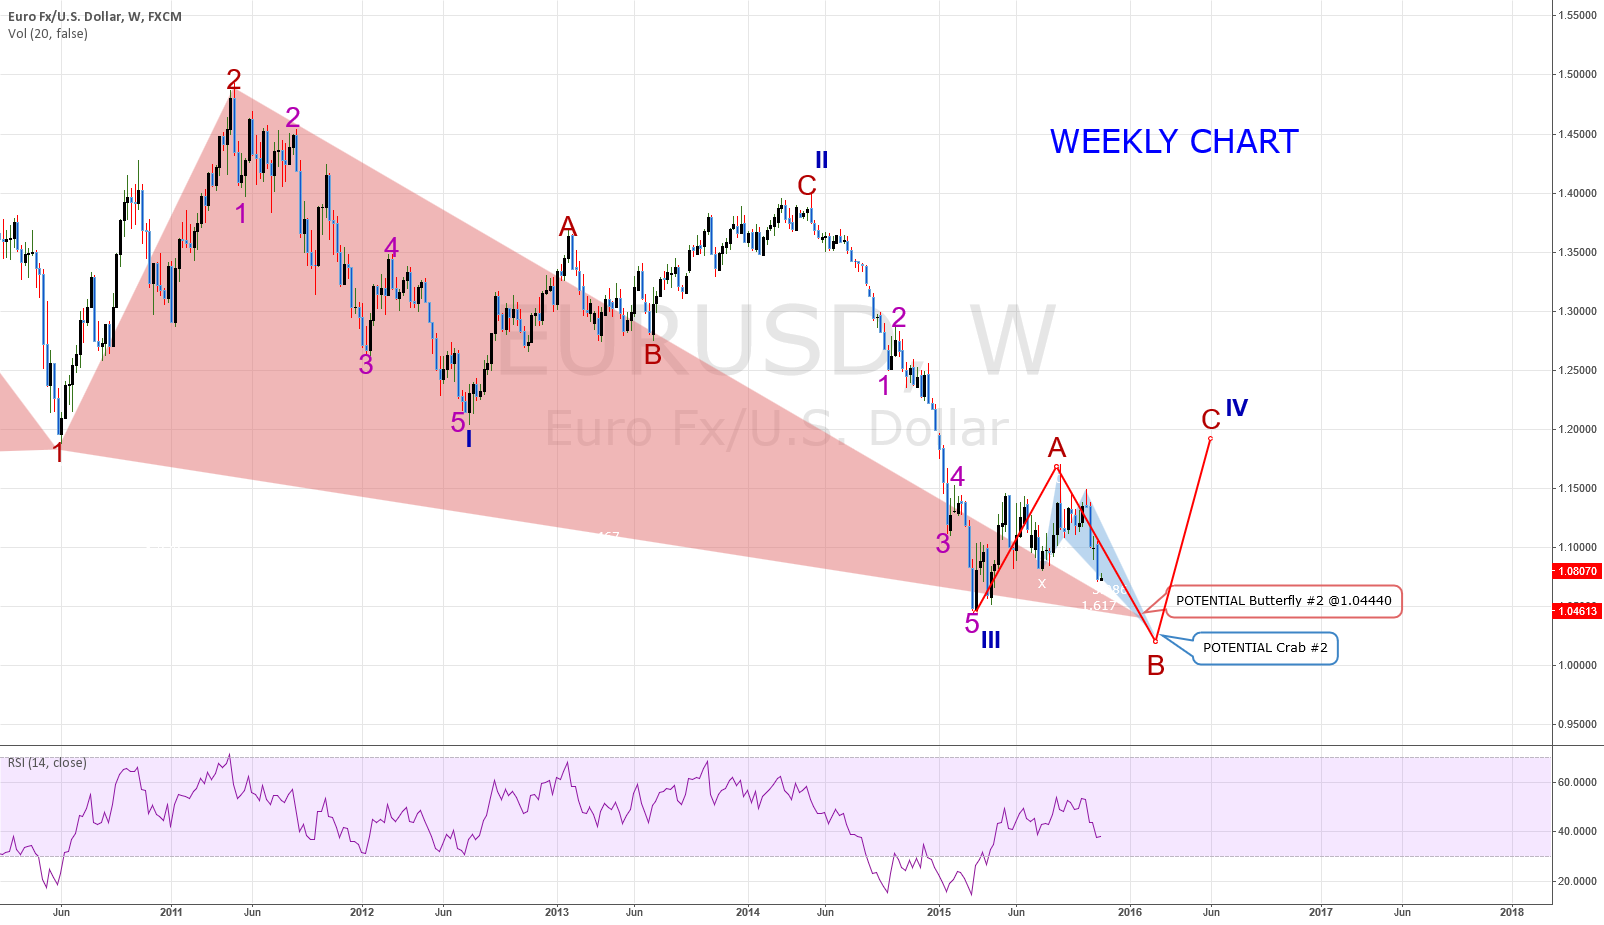 EURUSD: WEEKLY CHART - Focus In On The Wave 3